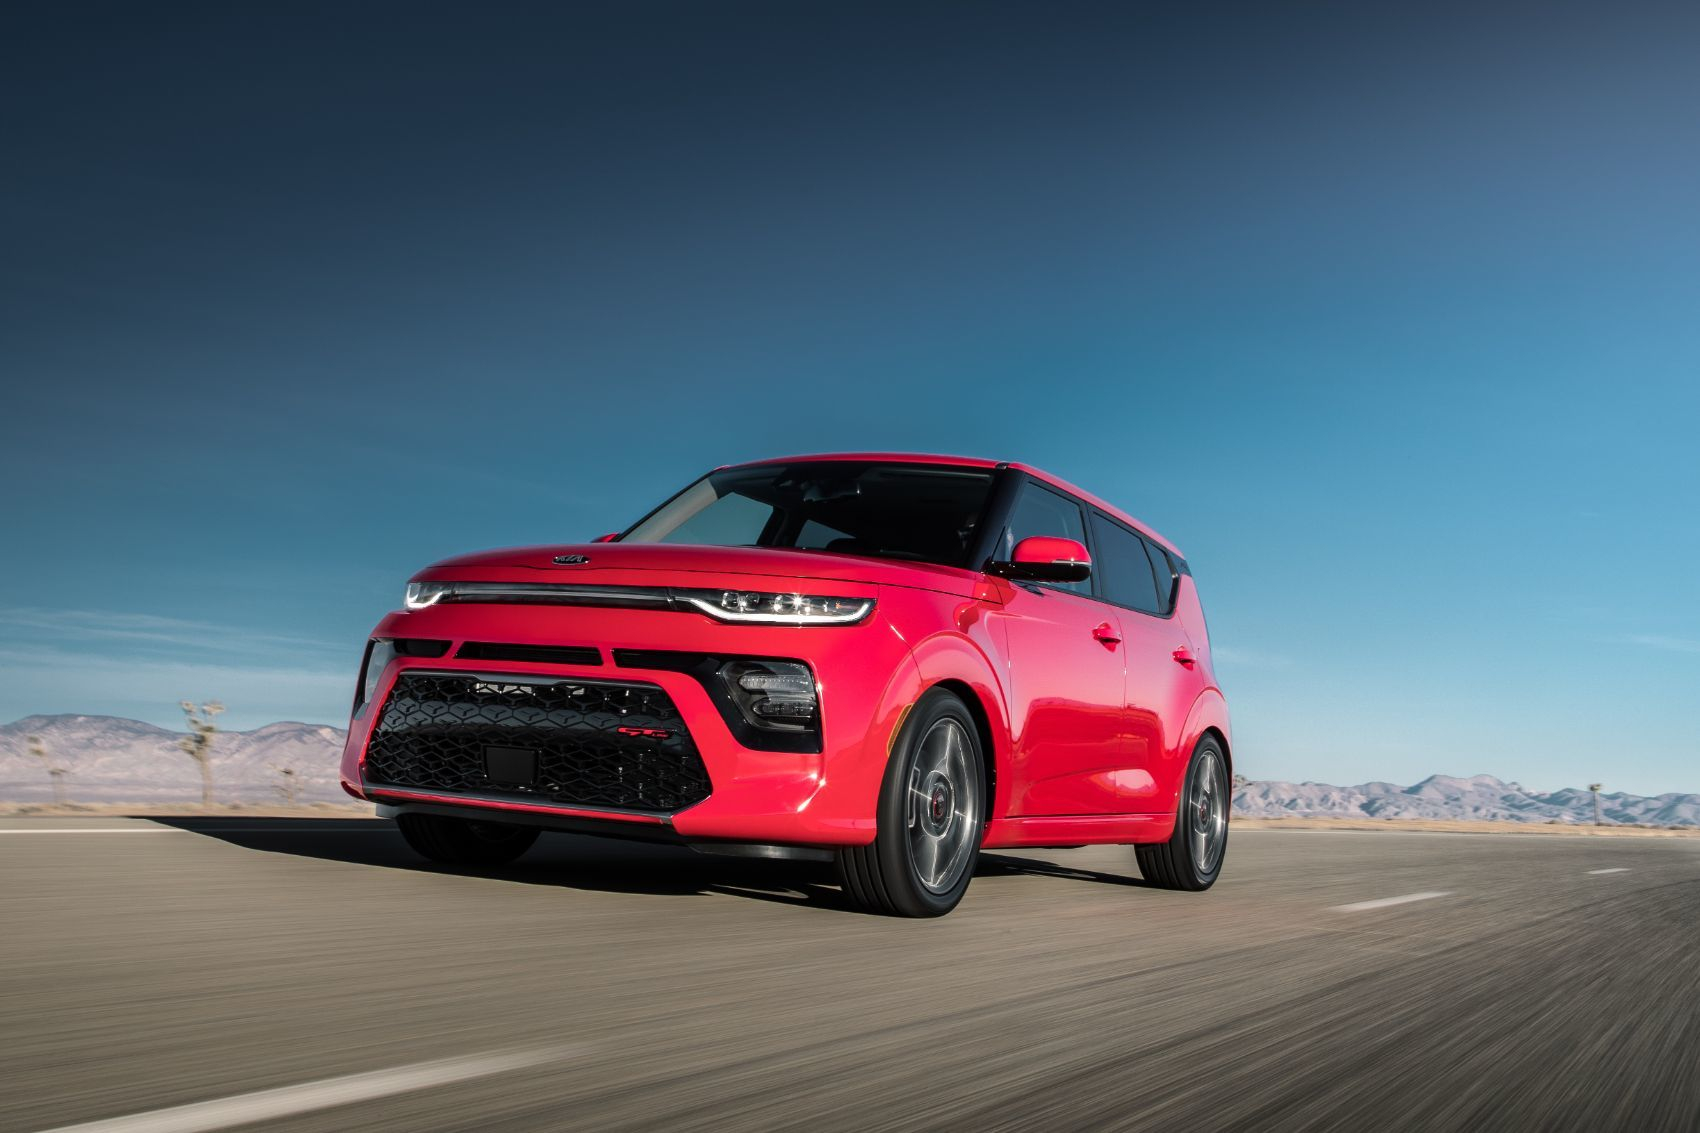 2020 Kia Soul Gt-Line Review: The Jolt Your Daily Commute Needs - 2022 Kia Soul Gt-Line Gas Mileage, Cargo Space, Release Date